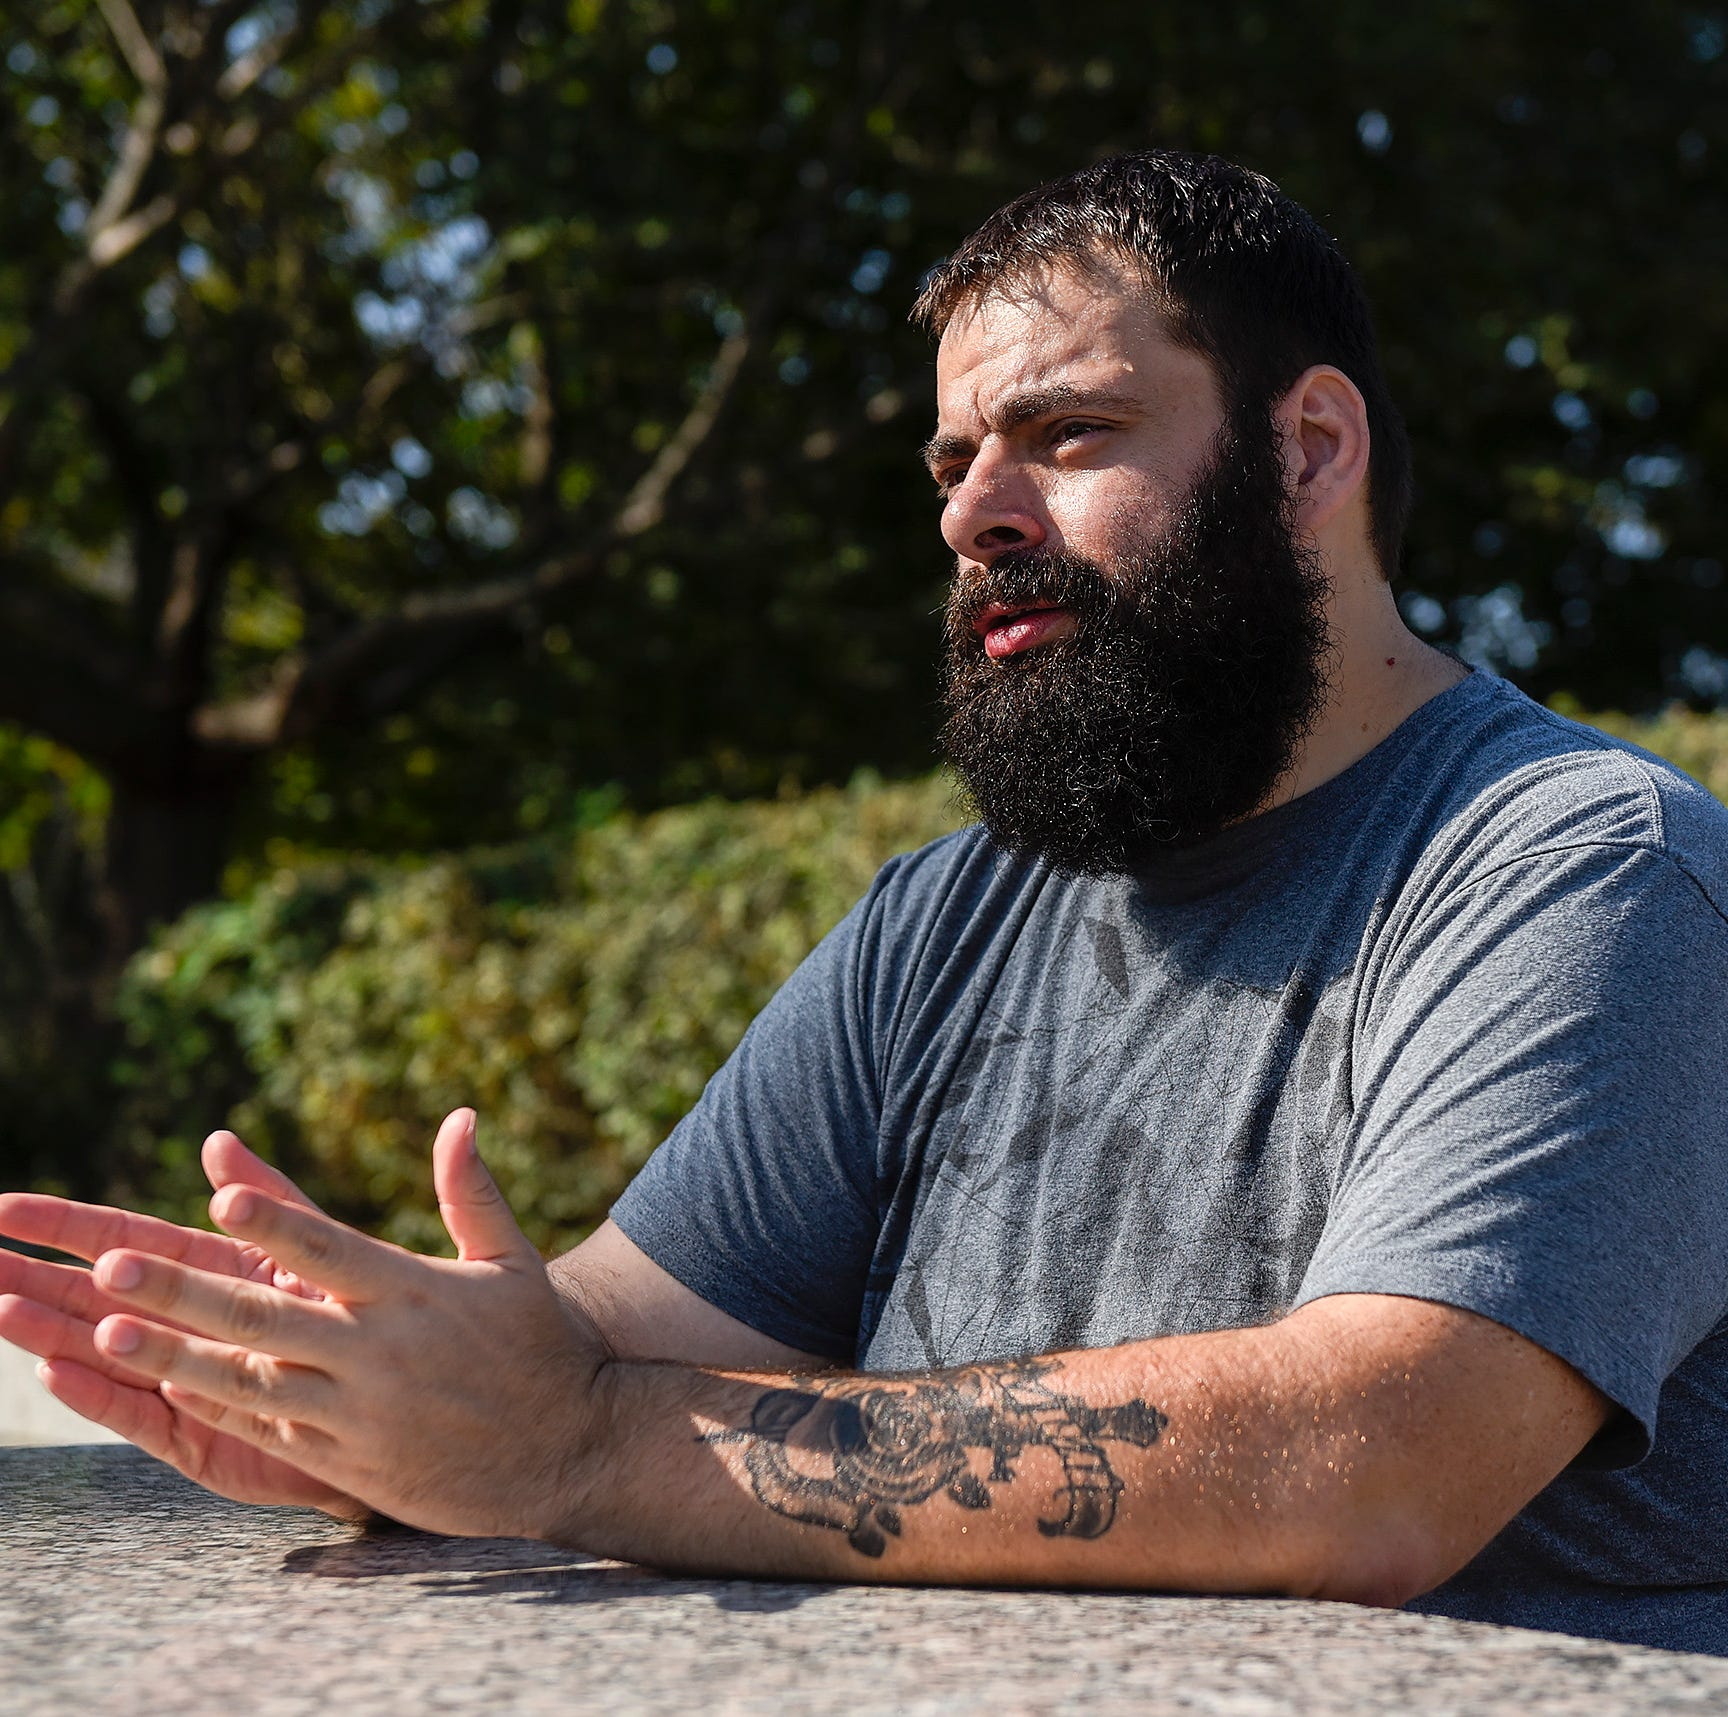 Not your typical personal trainer: 200 pounds lighter, man's story is inspiring others